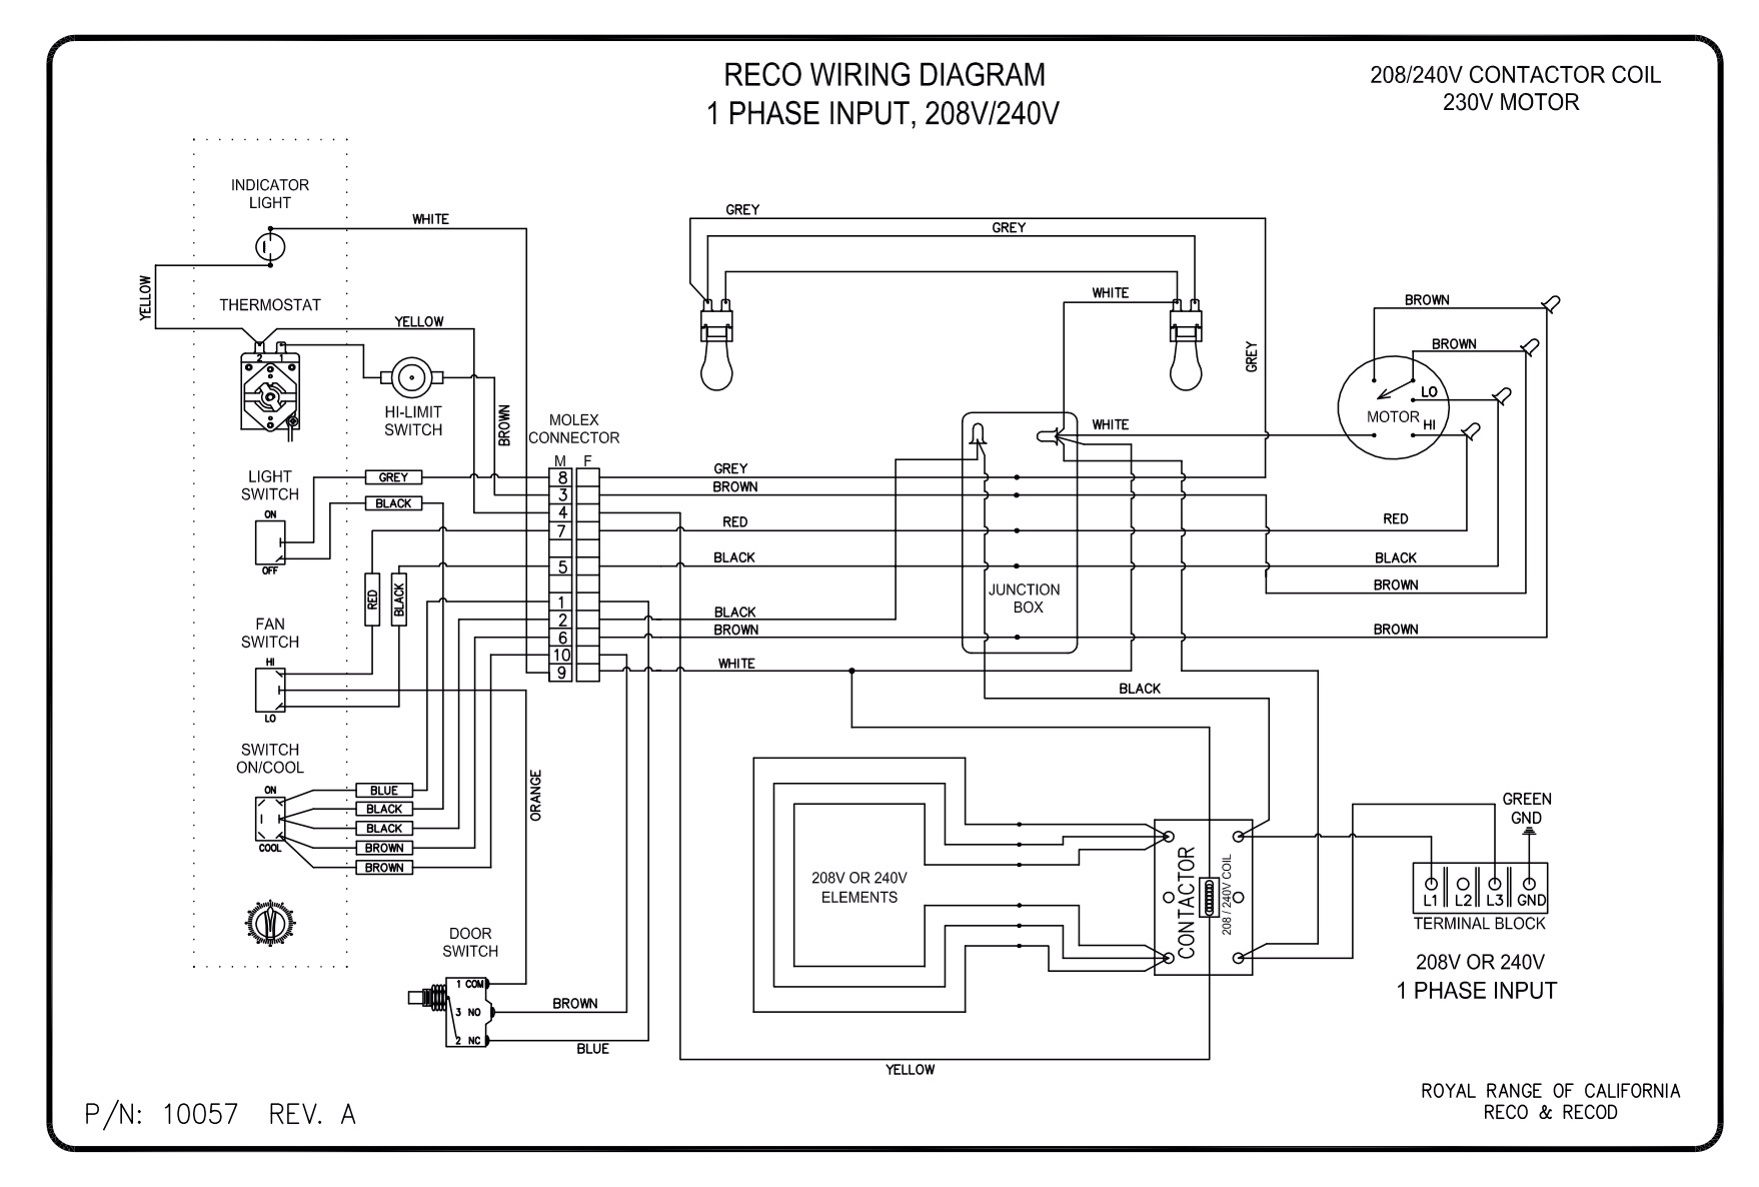 RECO1 wiring diagrams royal range of california oven wiring diagrams at gsmx.co